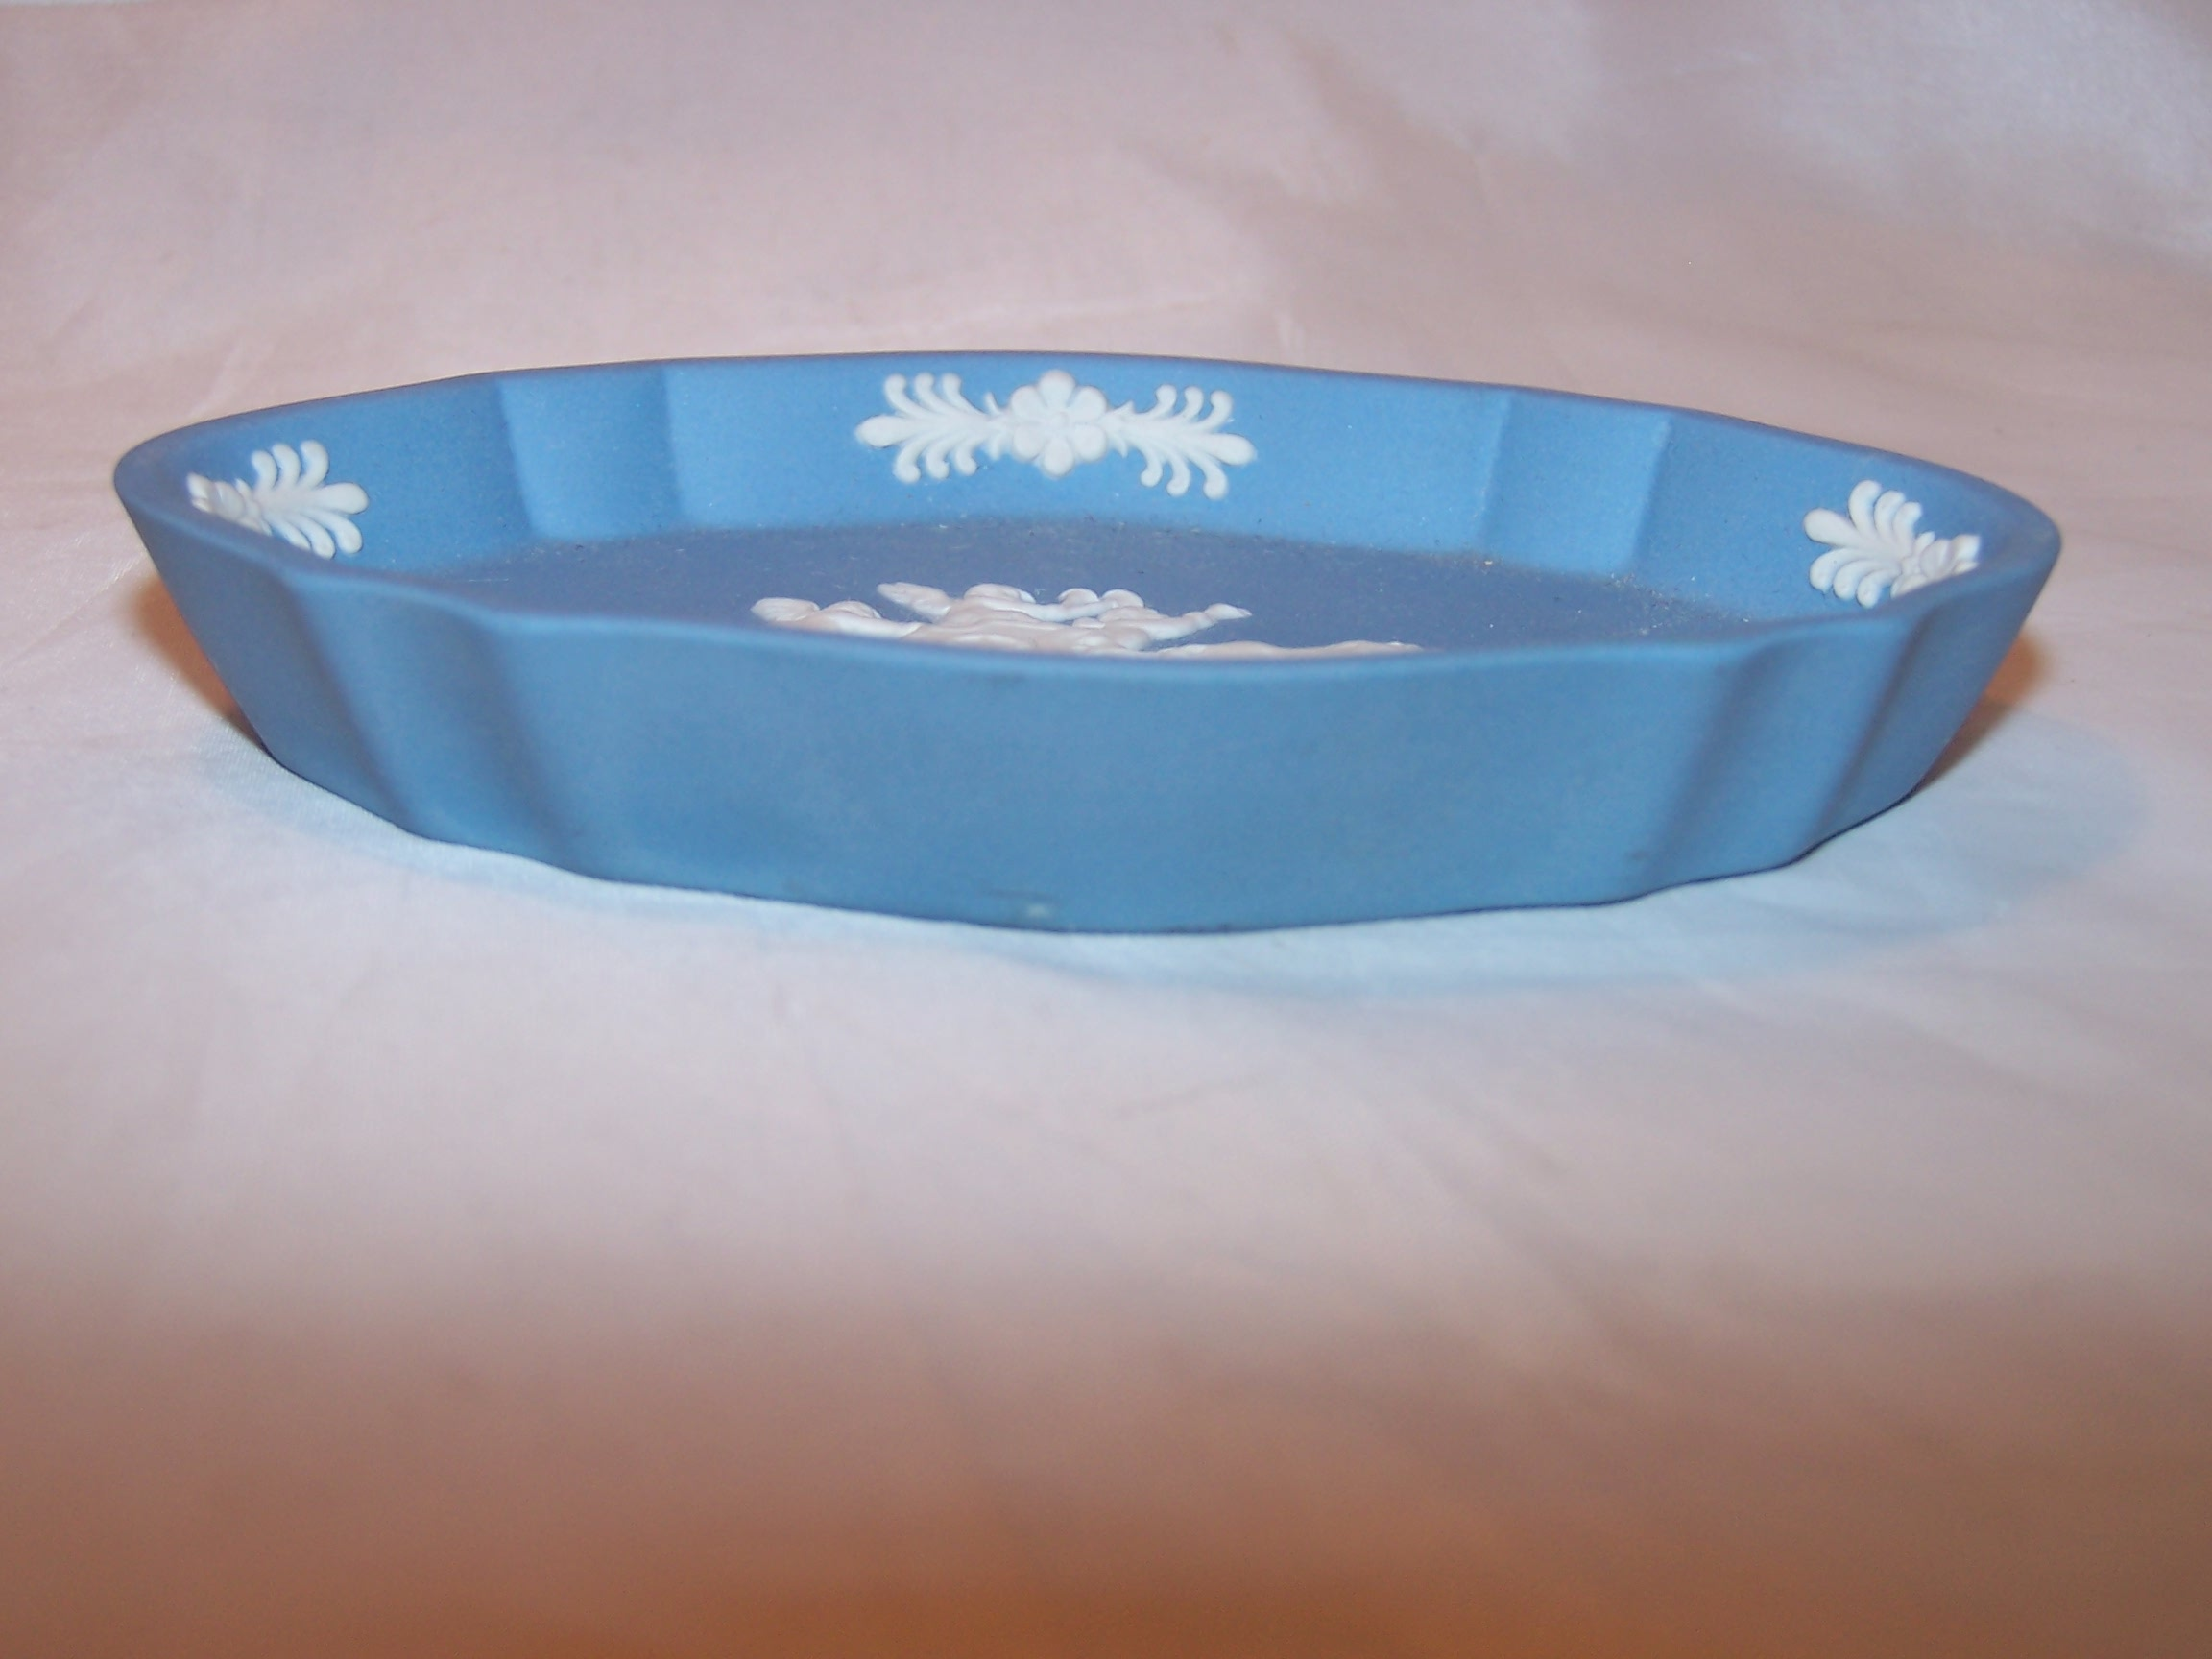 Image 2 of  Wedgwood Jasperware Oval Dish